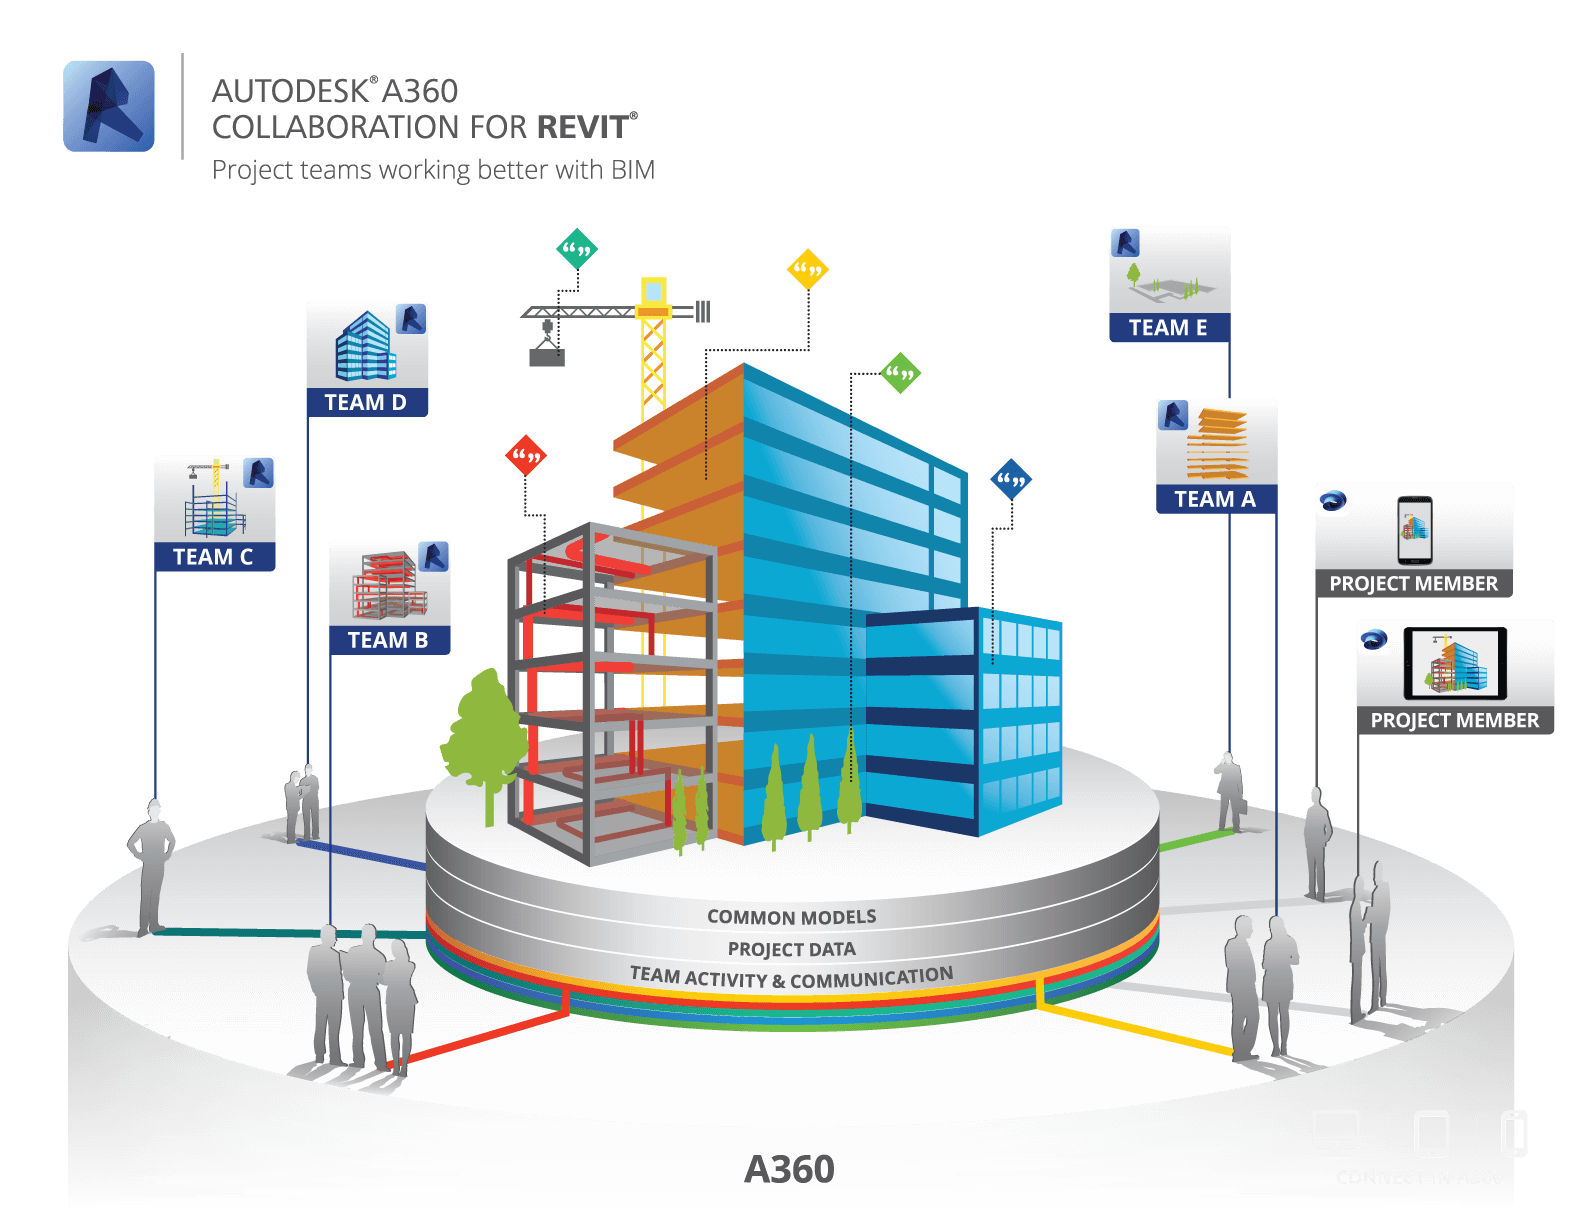 A360 Collaboration for Revit Inforgraphic